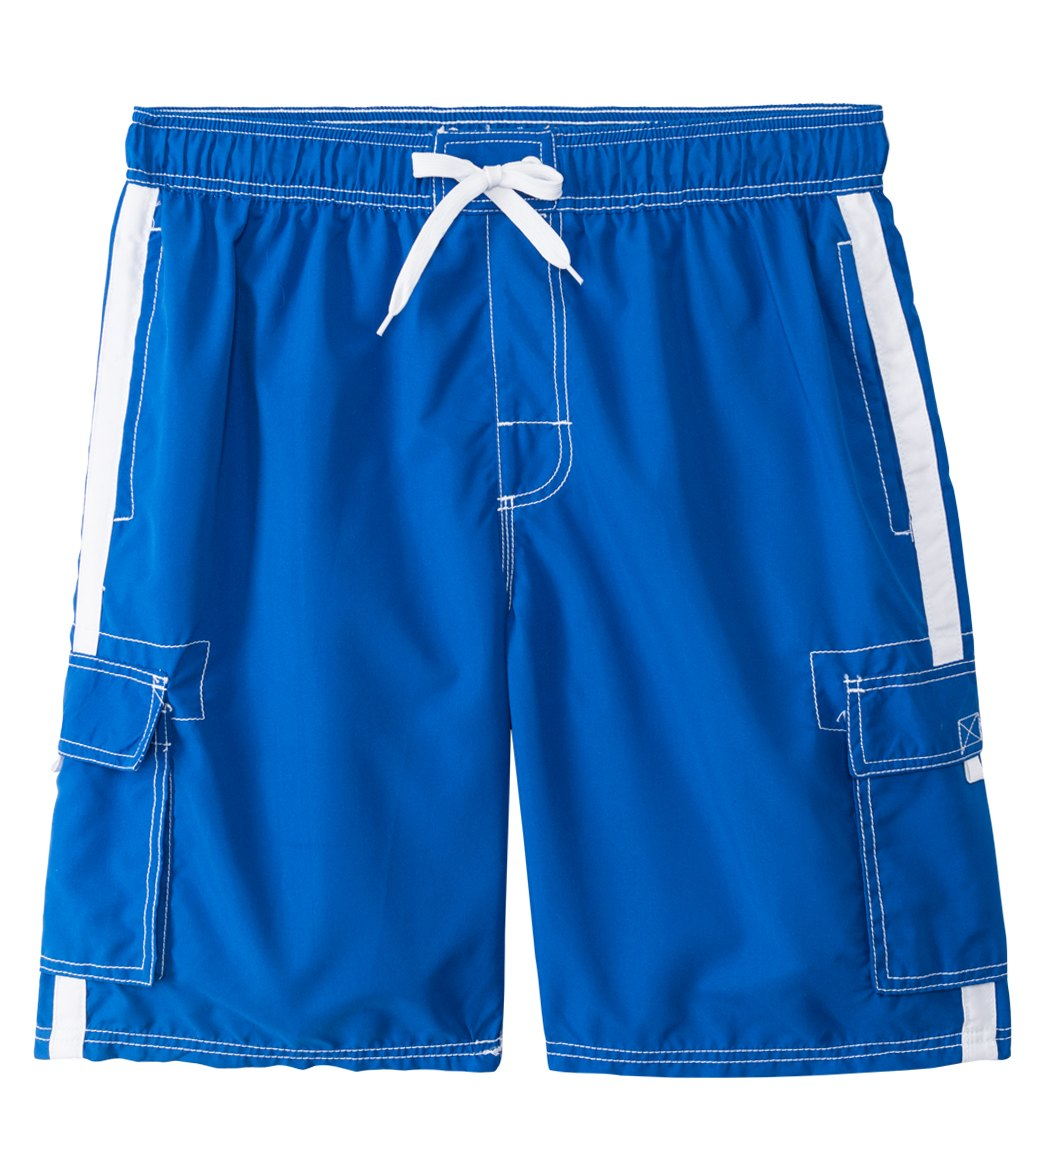 b0a4ab62f90 Kanu Surf Men's Barracuda Swim Trunk at SwimOutlet.com